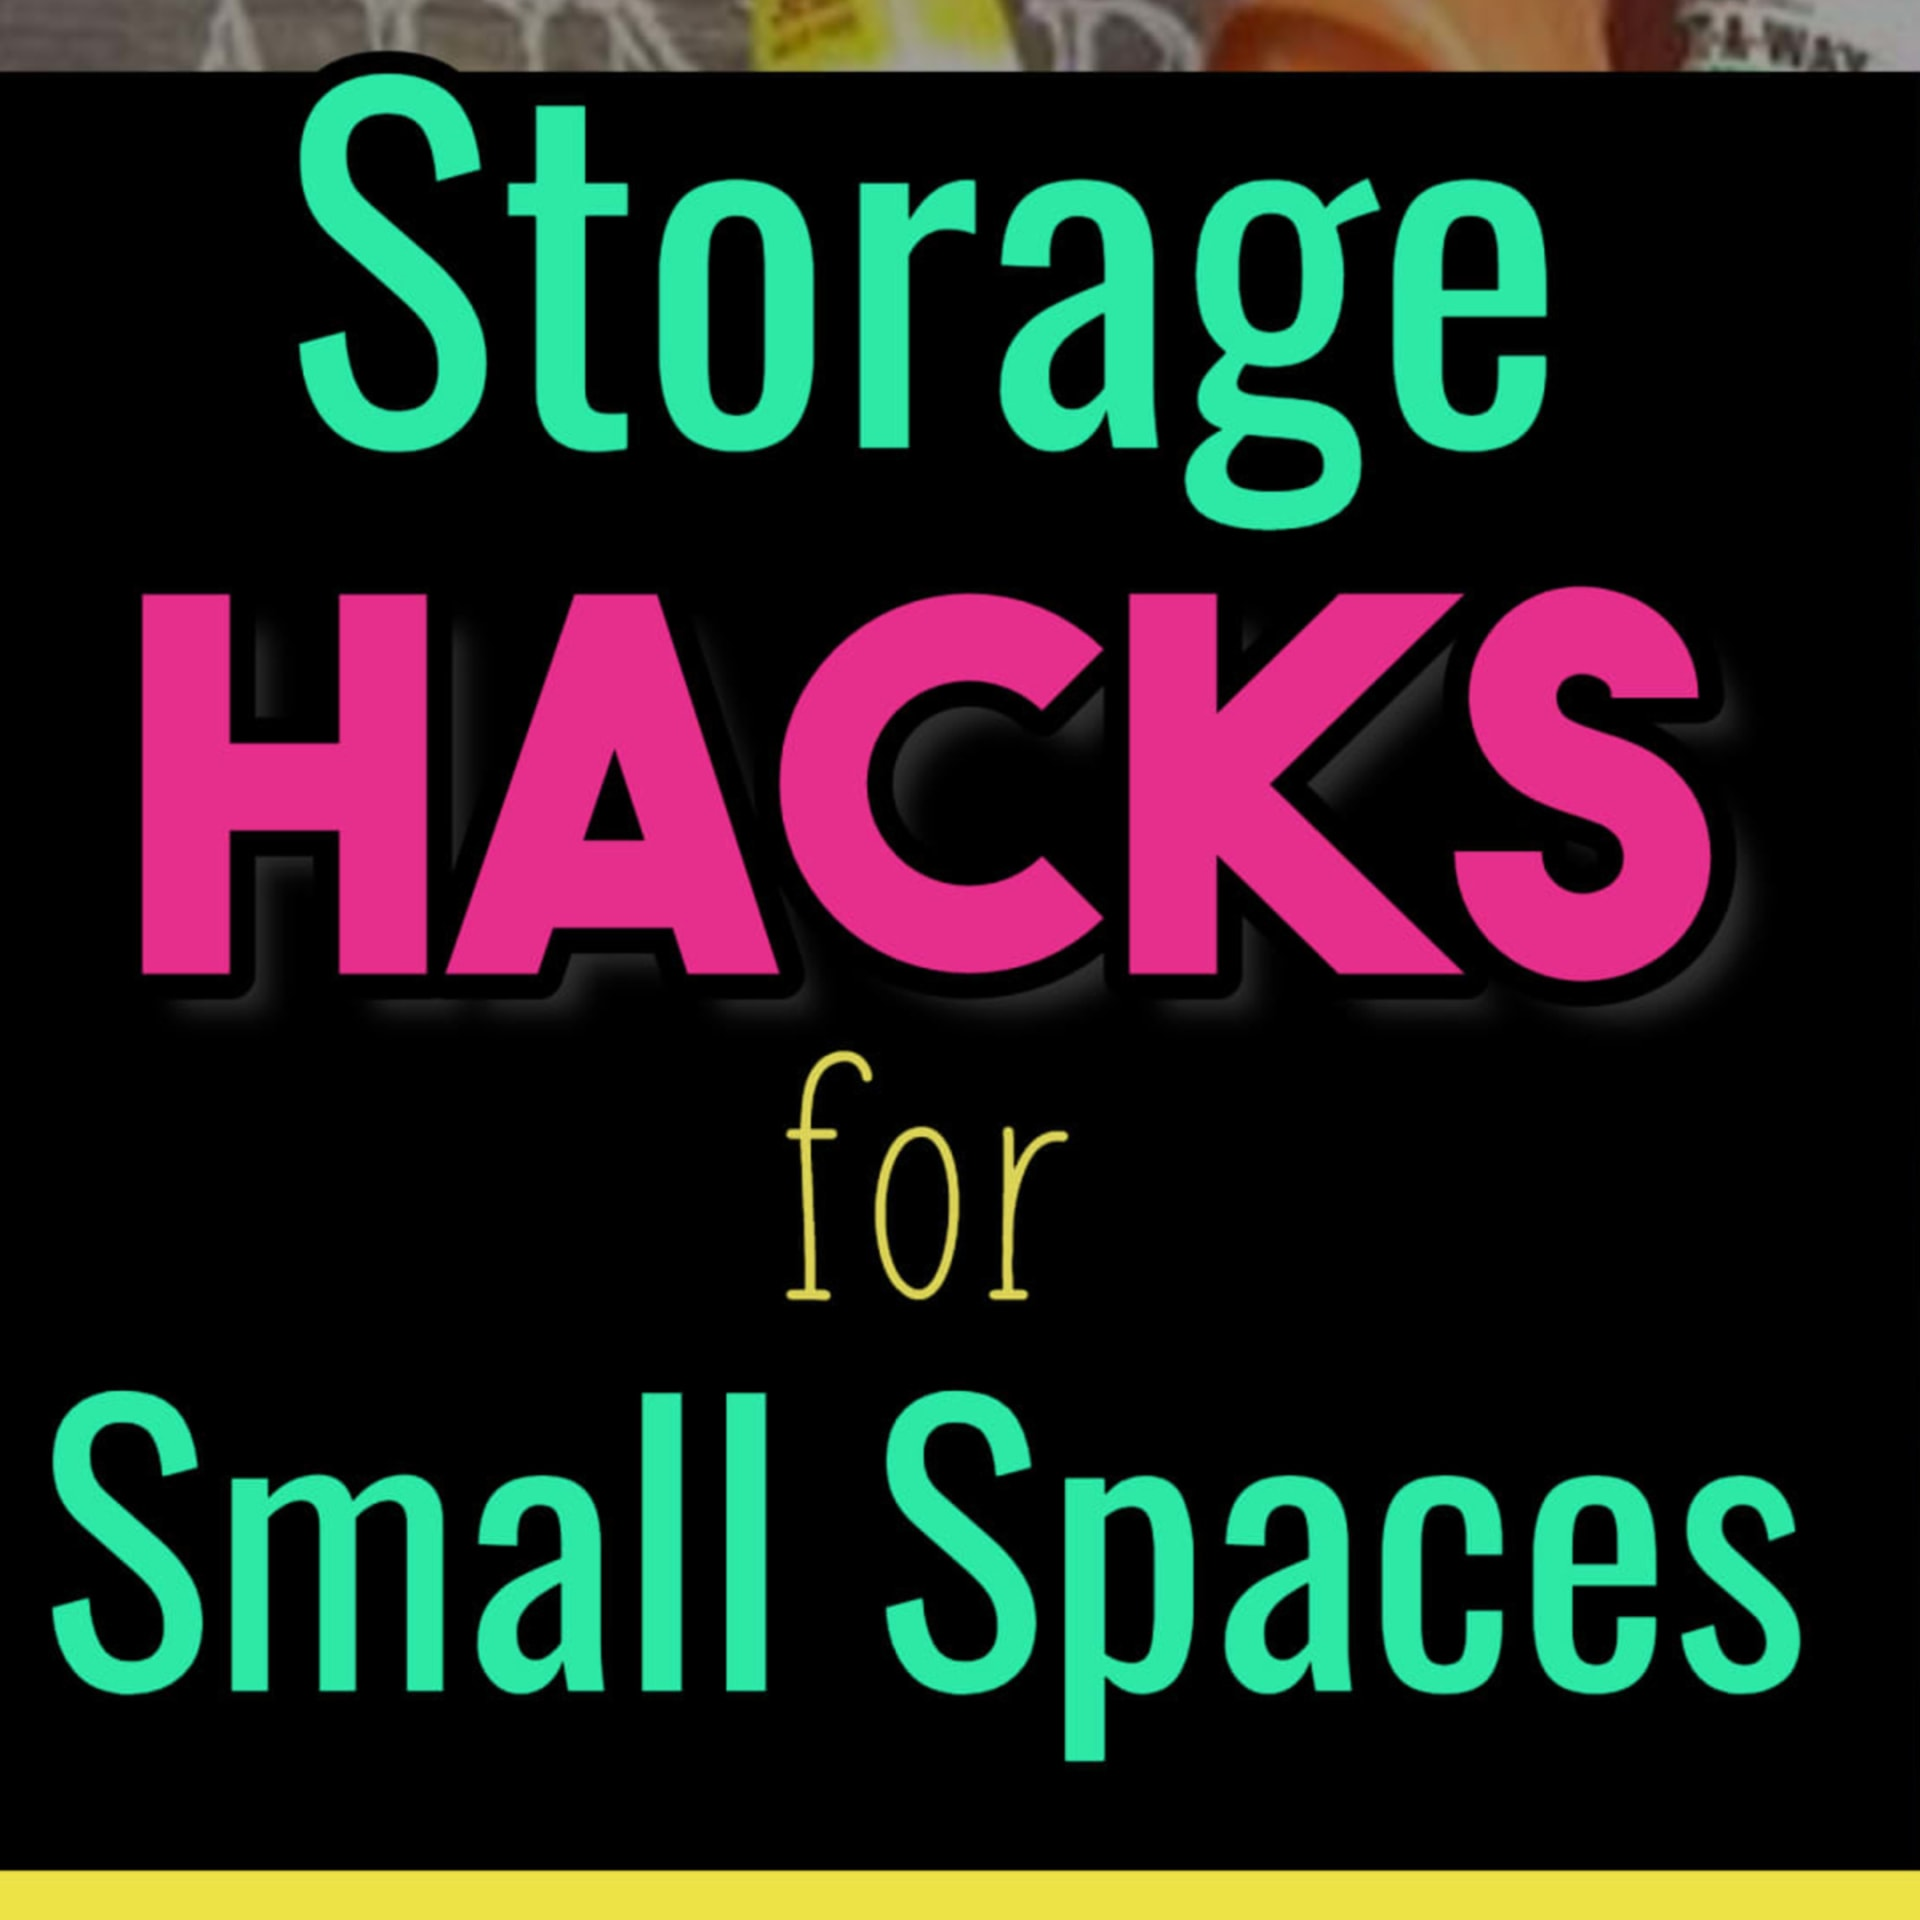 Simple storage and clutter solutions for small spaces.  Creative home organization hacks for organizing small spaces on a budget